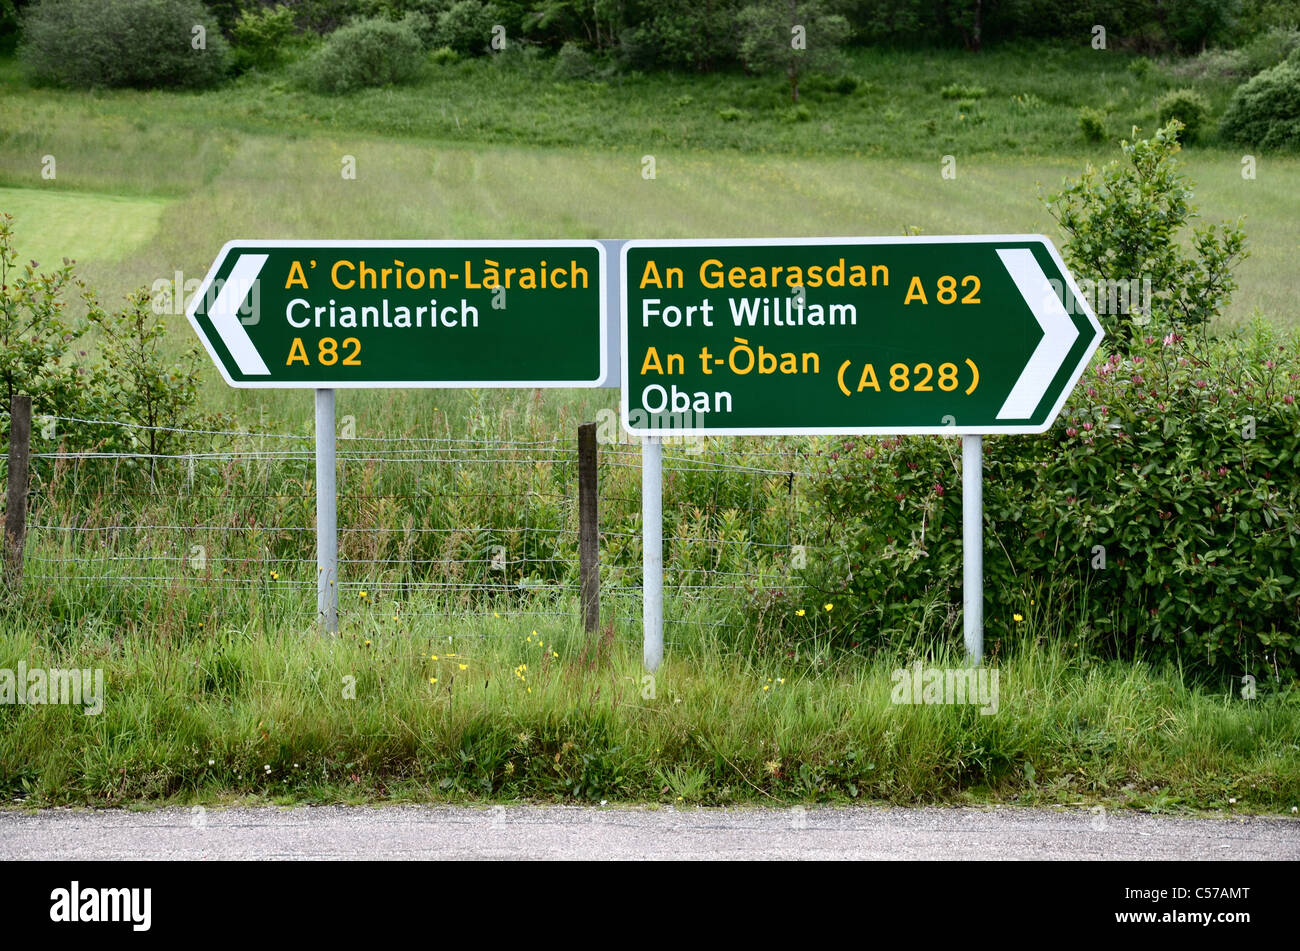 road-signs-in-english-and-gaelic-at-glen